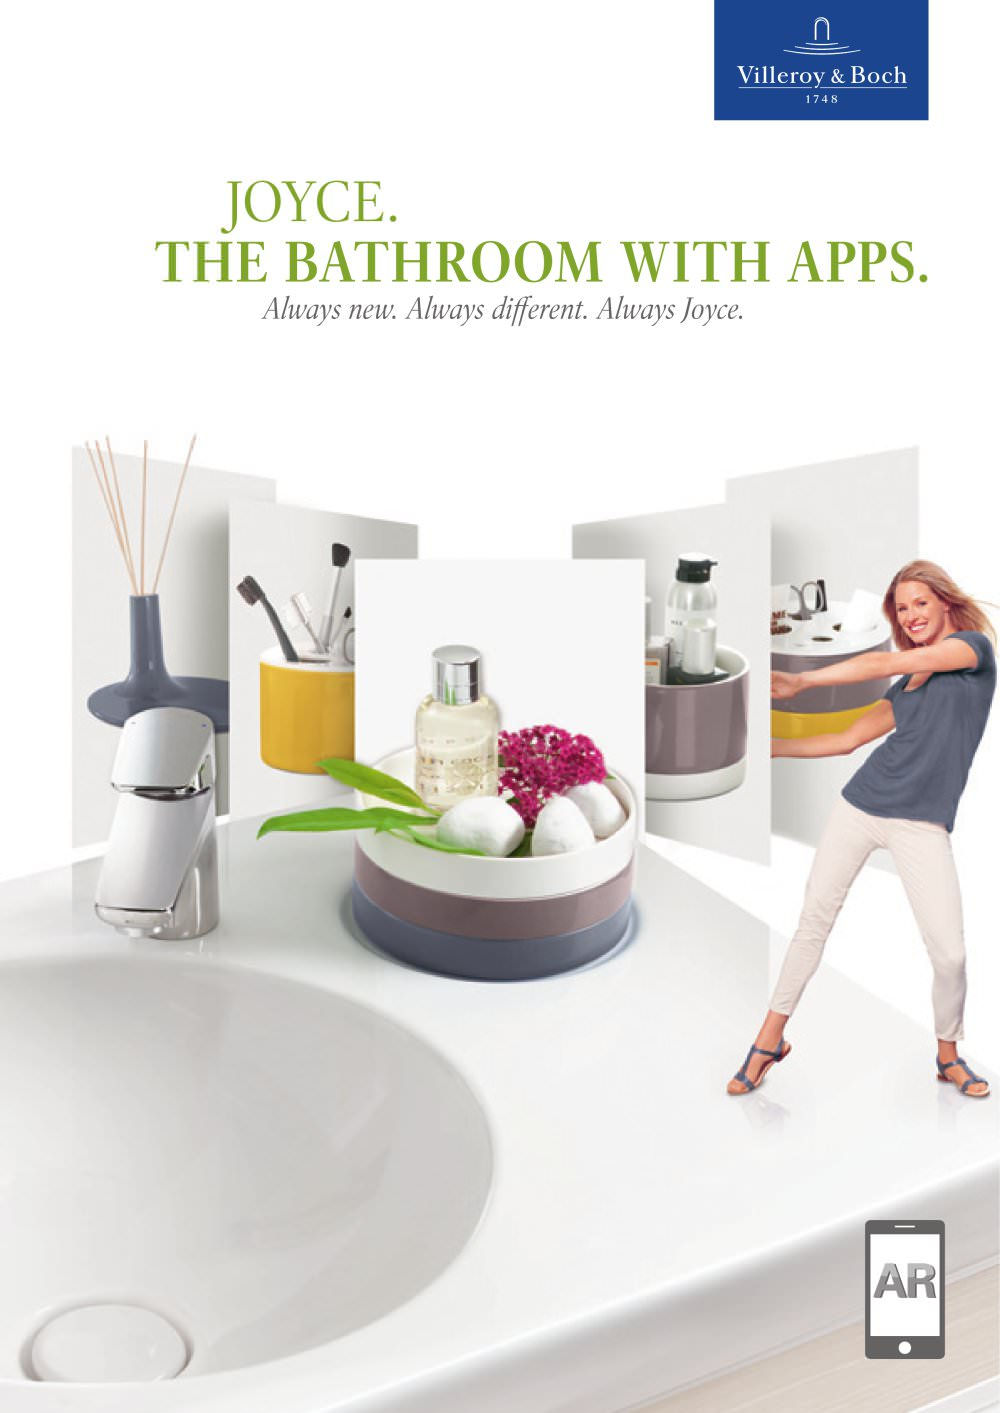 the bathroom with apps 1 20 pages - Bathroom Designs Villeroy And Boch